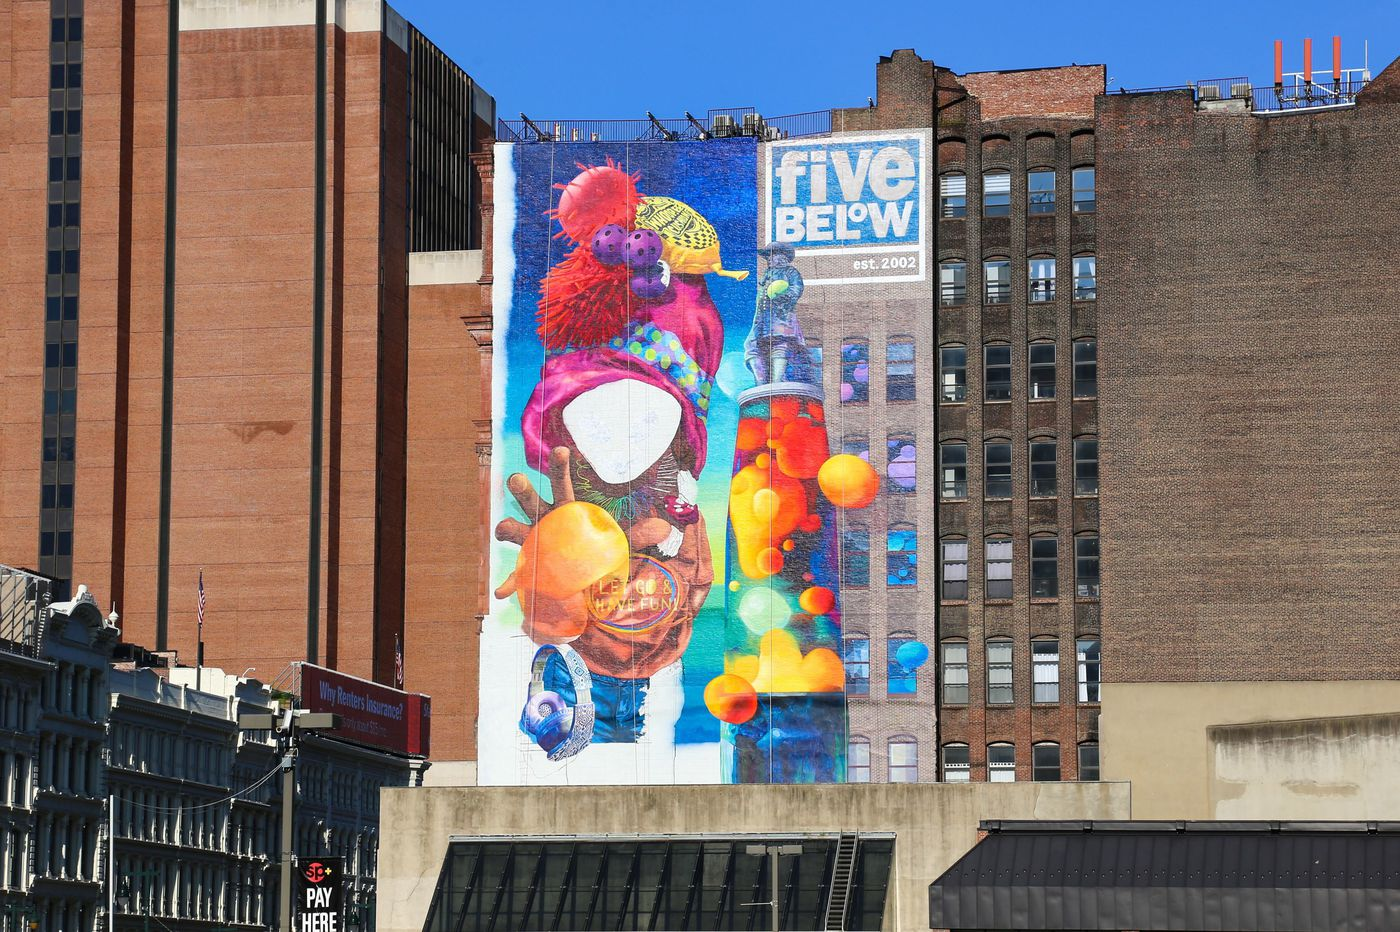 As other cities ban outdoor ads, a new mural reminds us that Philly's public space is for sale | Opinion